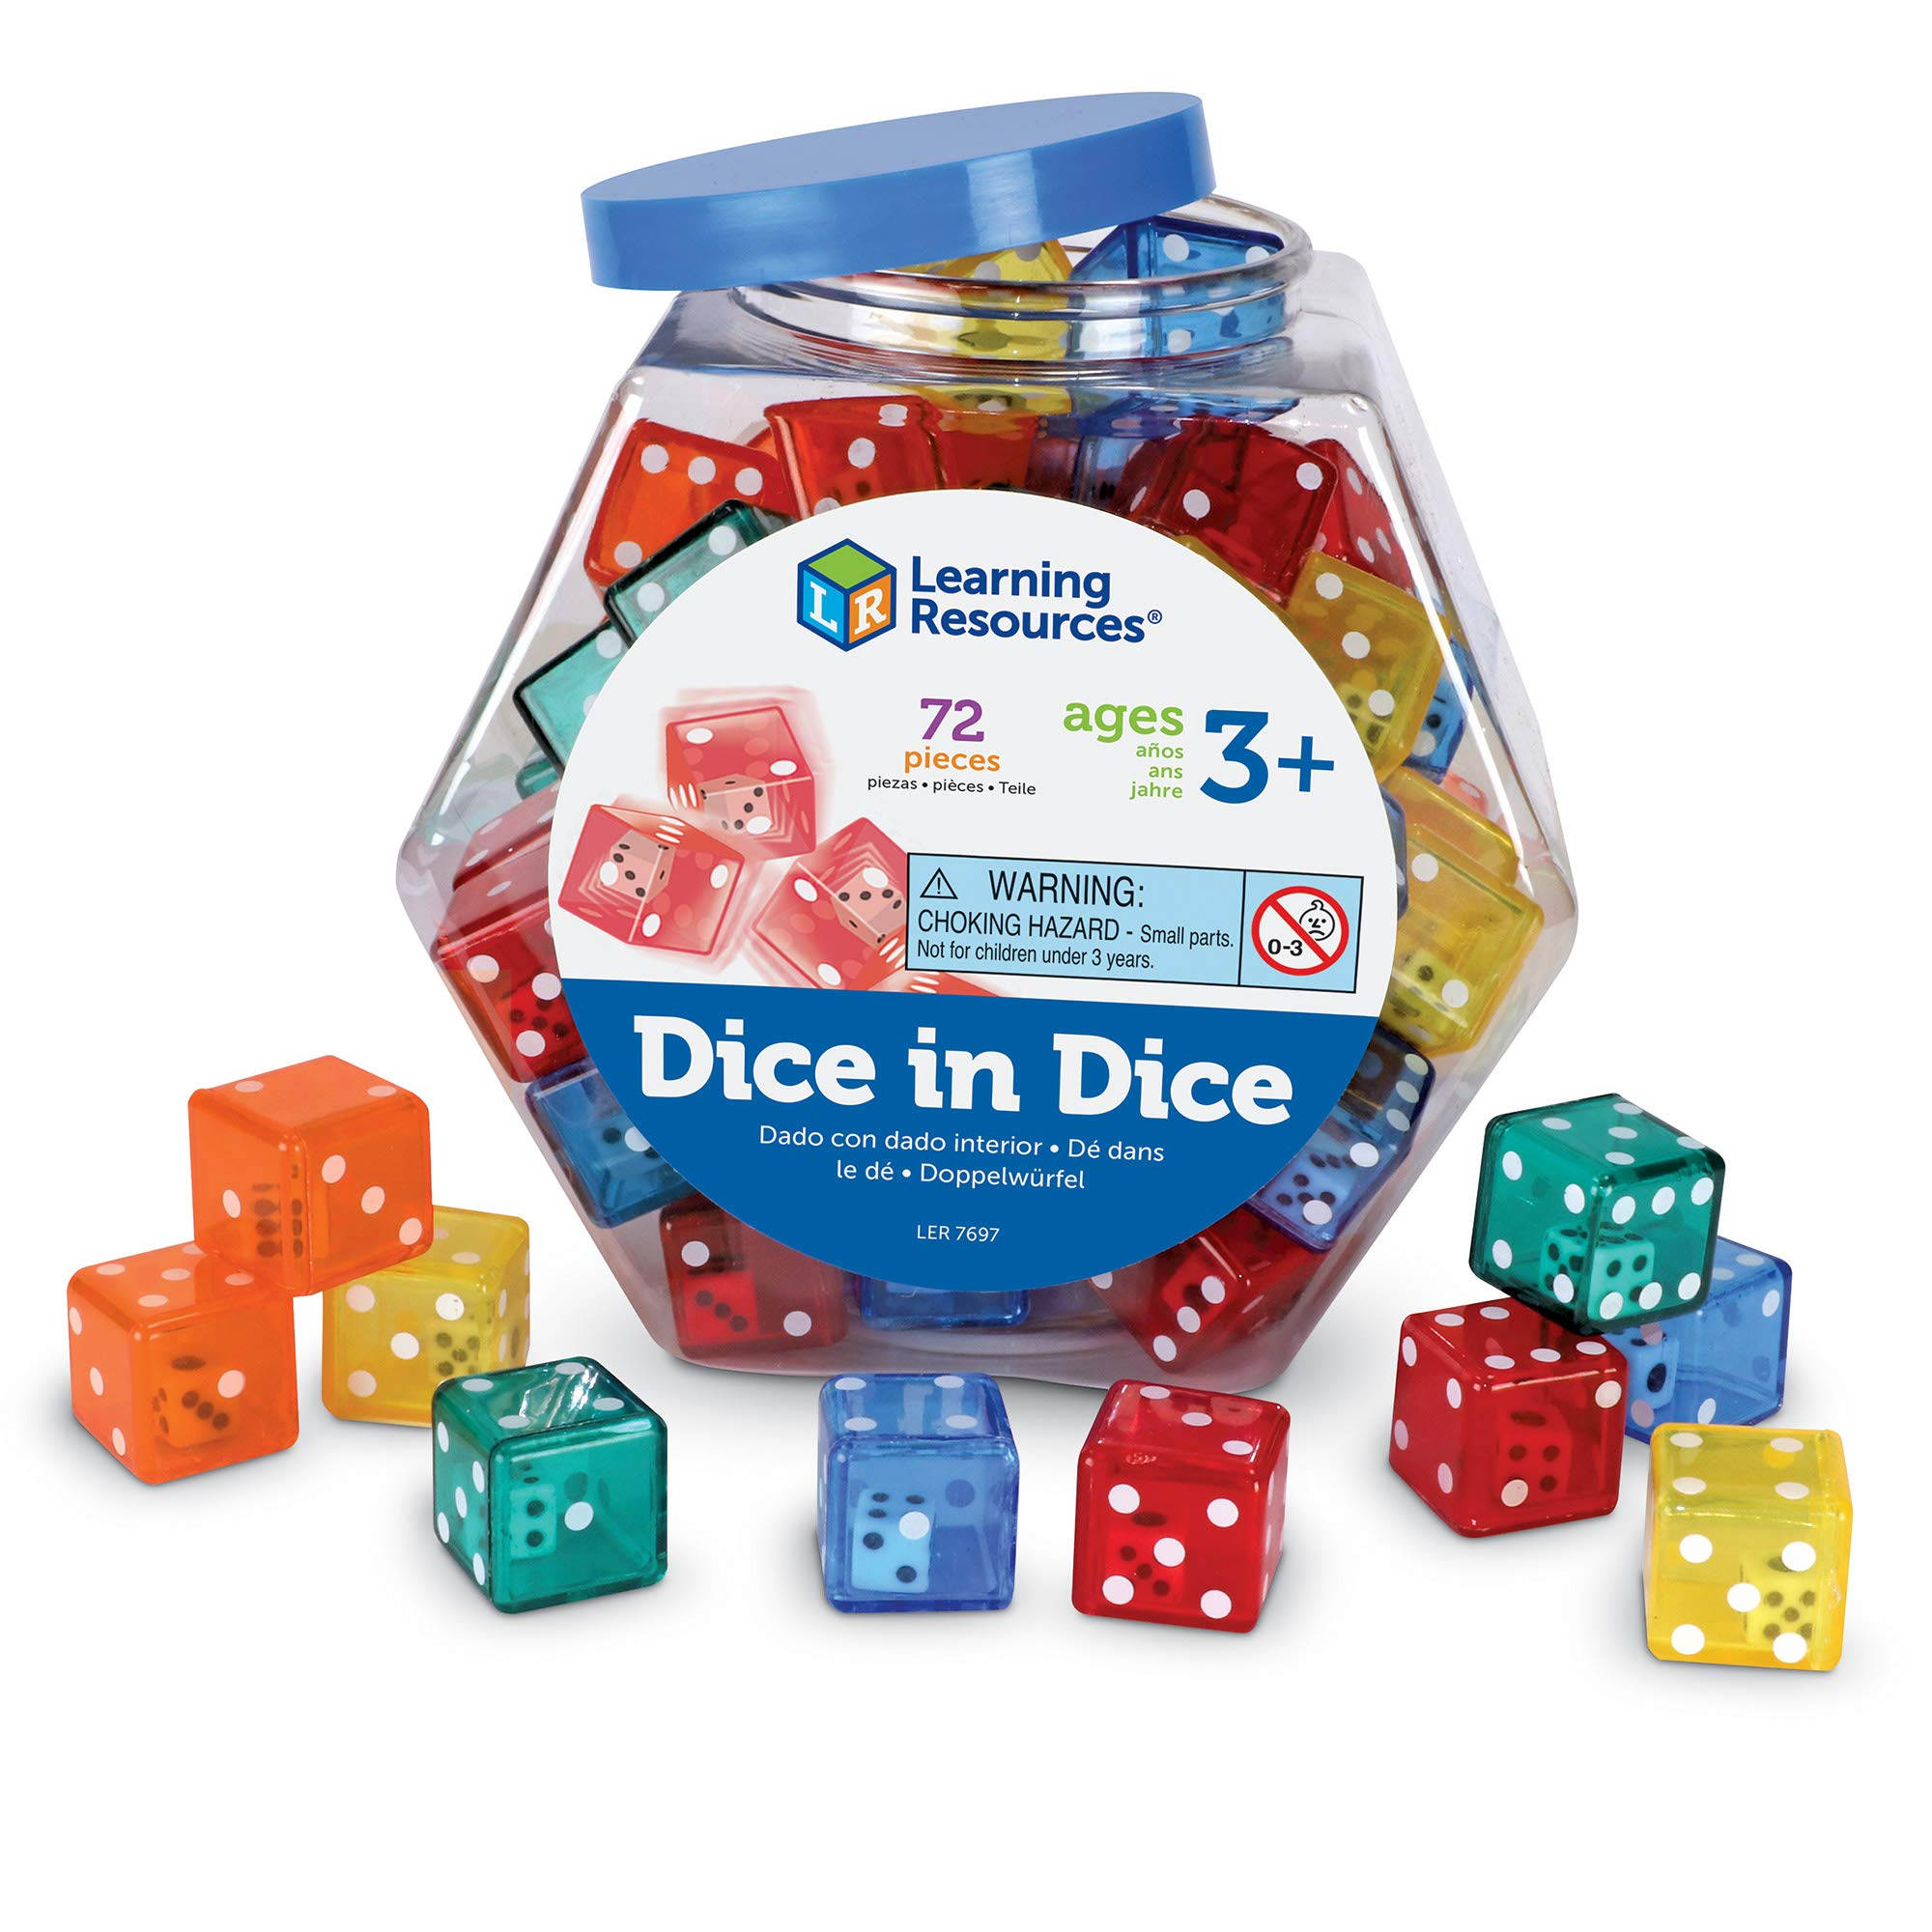 Learning Resources Dice In Dice Bucket, Math Toy, Manipulative, Set of 72, Ages 3+ by Learning Resources